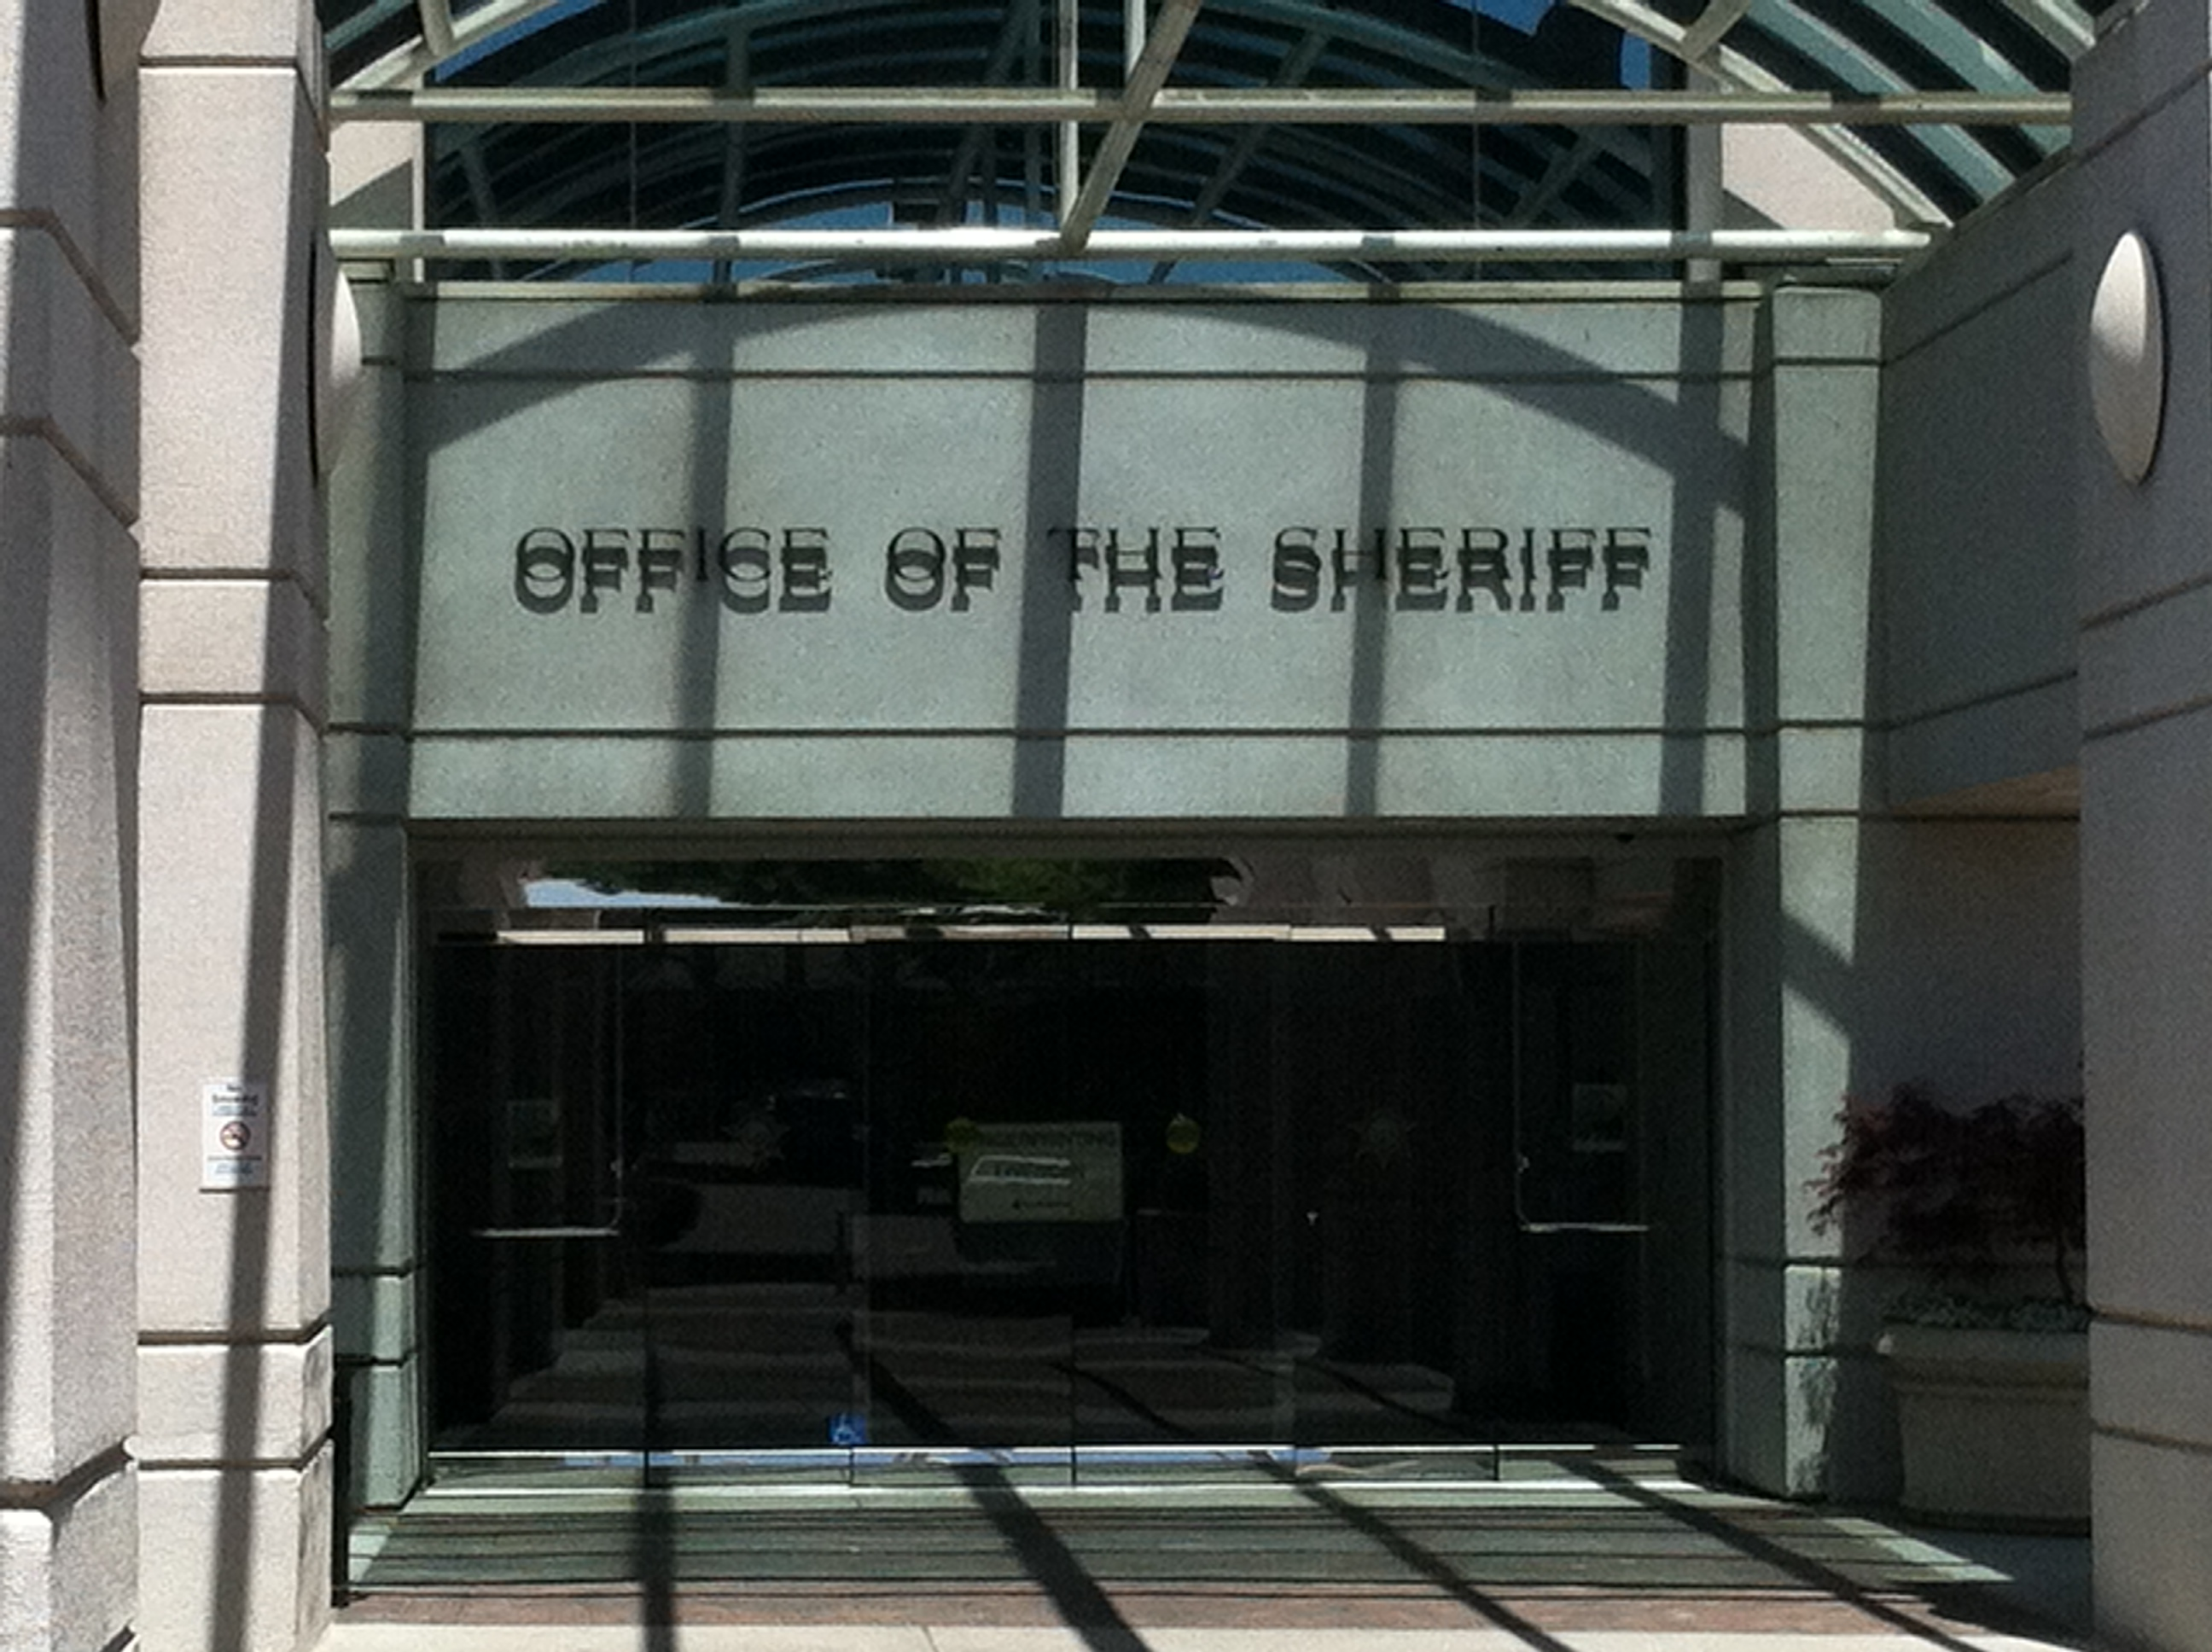 San Jose Sheriff Office